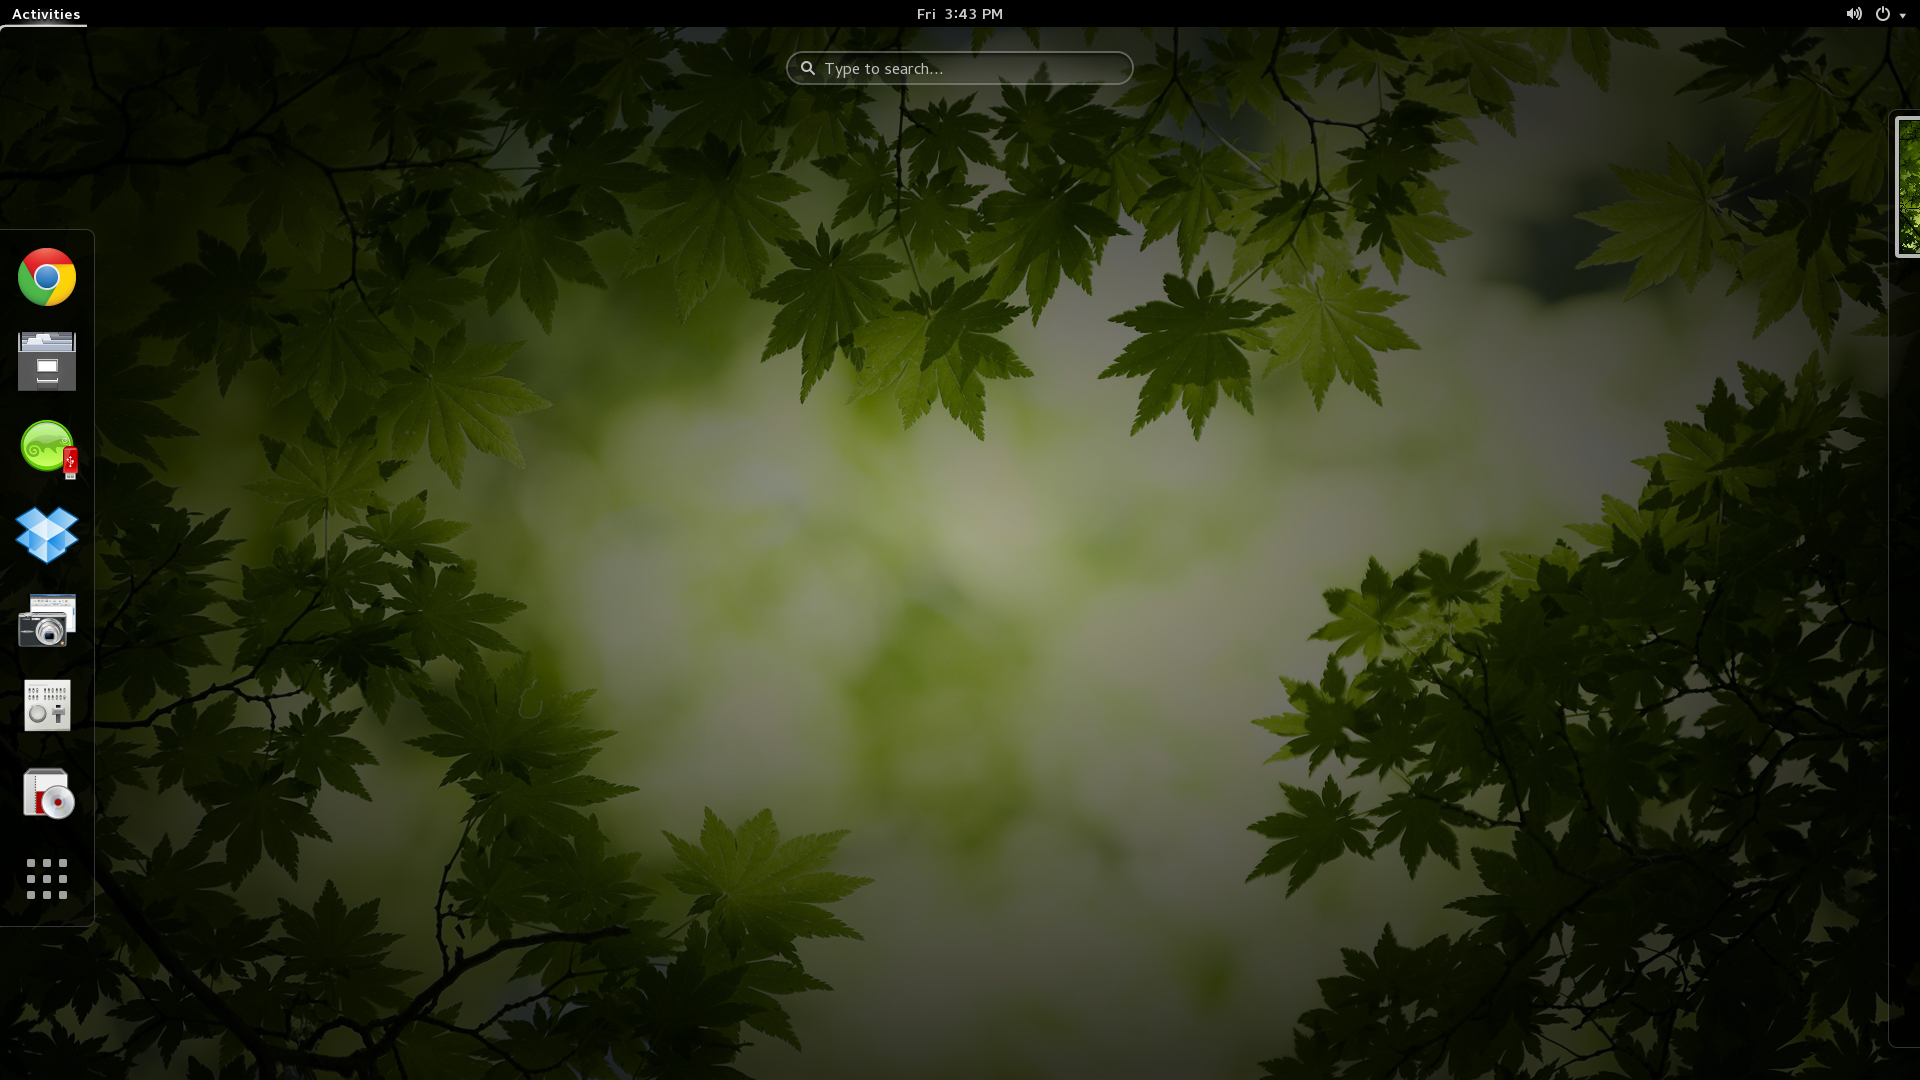 Opensuse Gnome 3 Customized Green Leaf Wallpaper Green